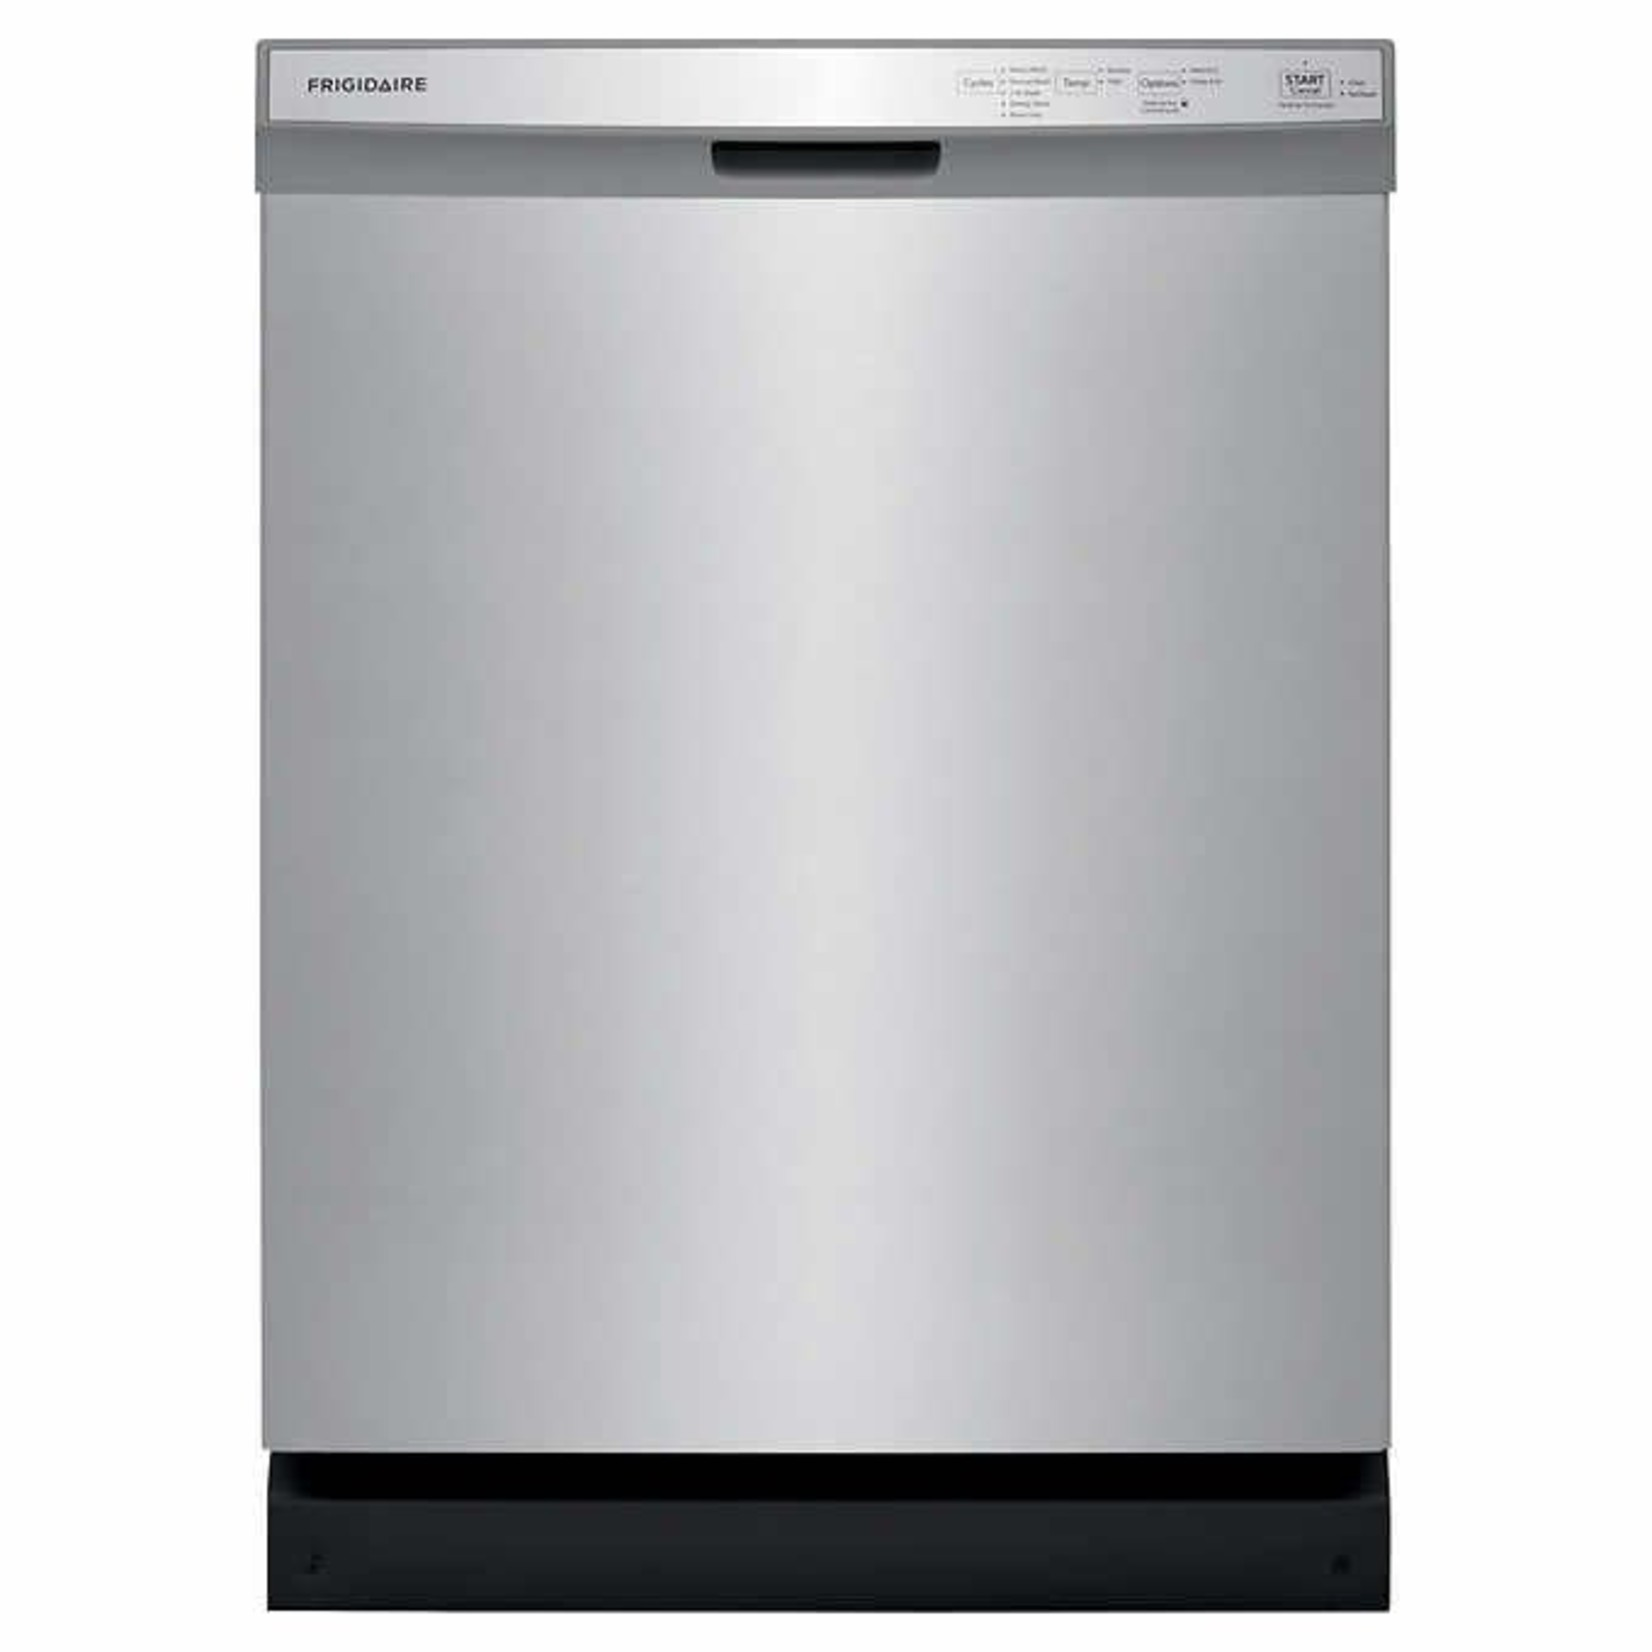 Frigidaire 24 in. Built-In Stainless-steel Dishwasher with Heated Drying System FFCD2418US**missing front base plate**